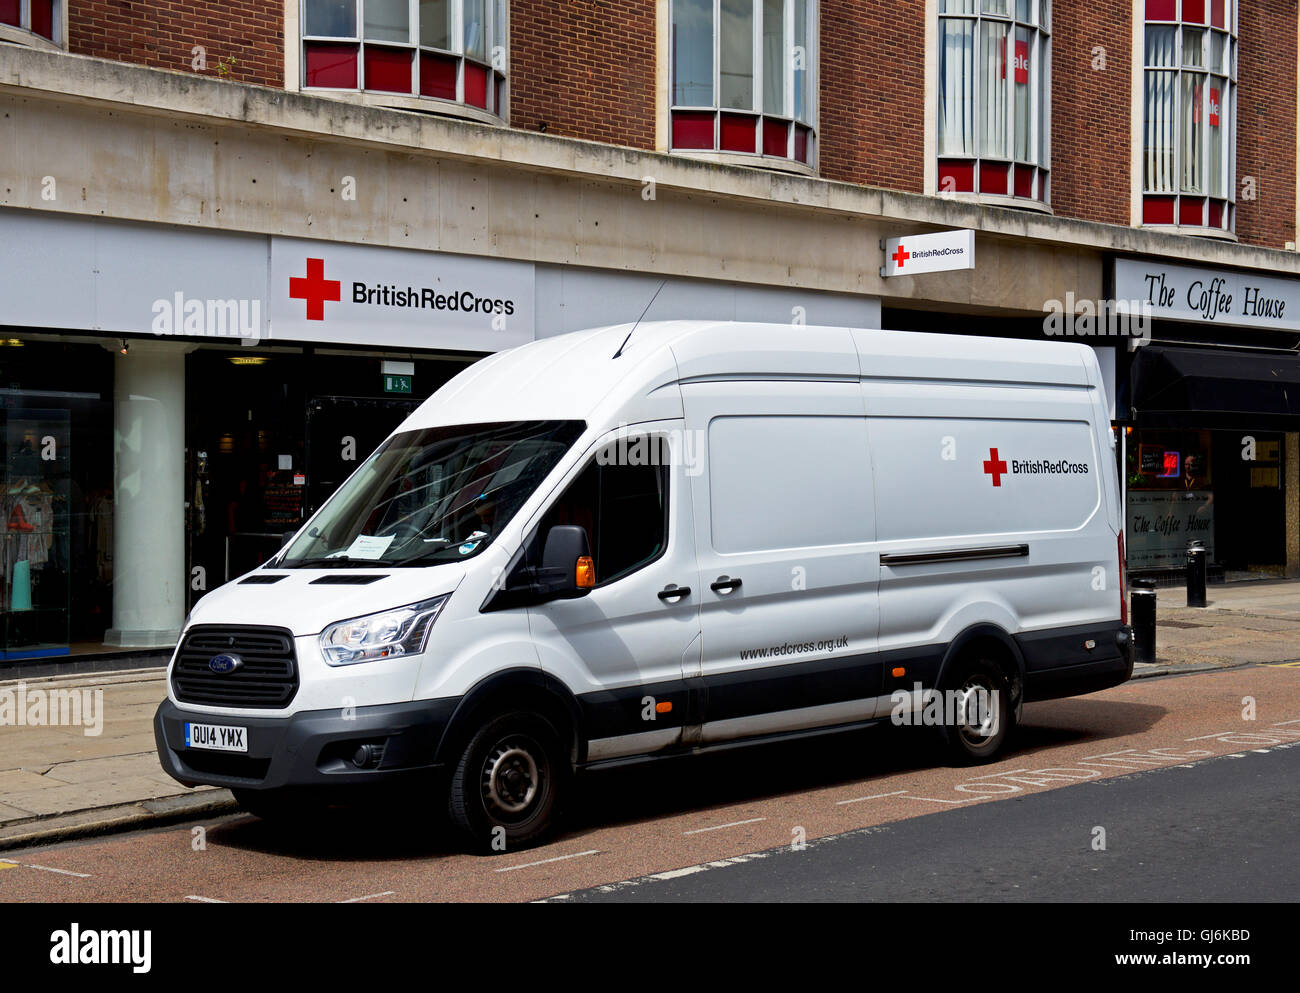 Delivery van parked outside Red Cross charity shop, England UK - Stock Image